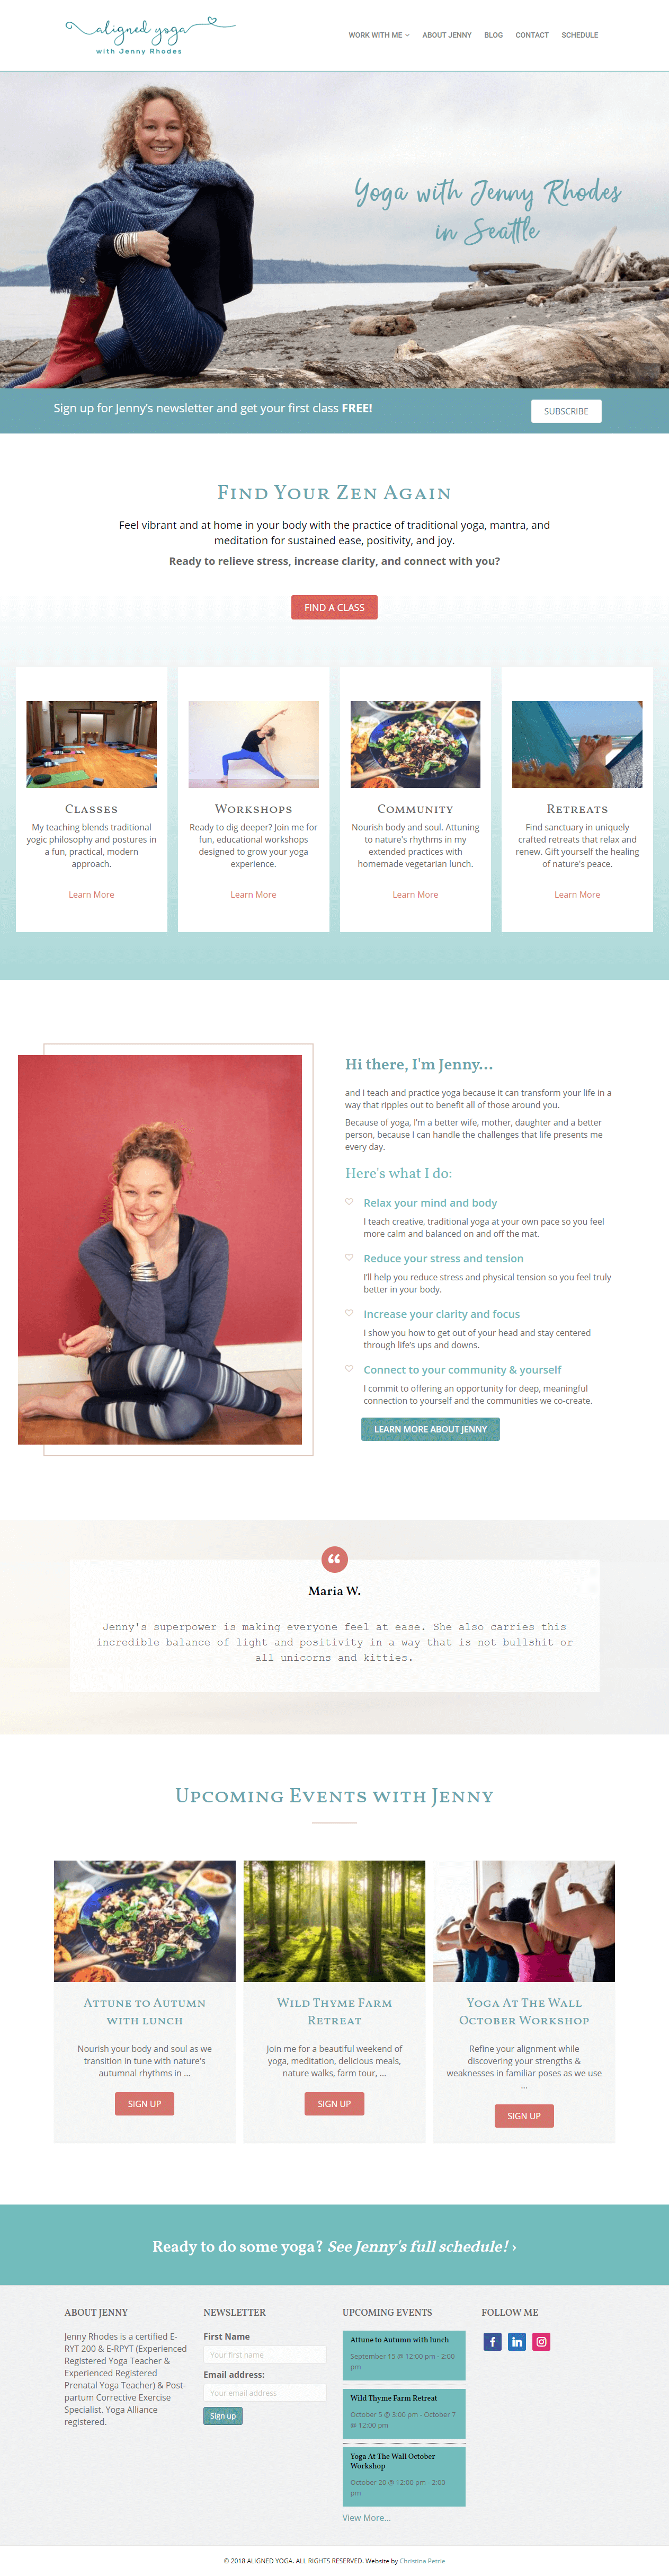 Aligned yoga with Jenny Rhodes home page